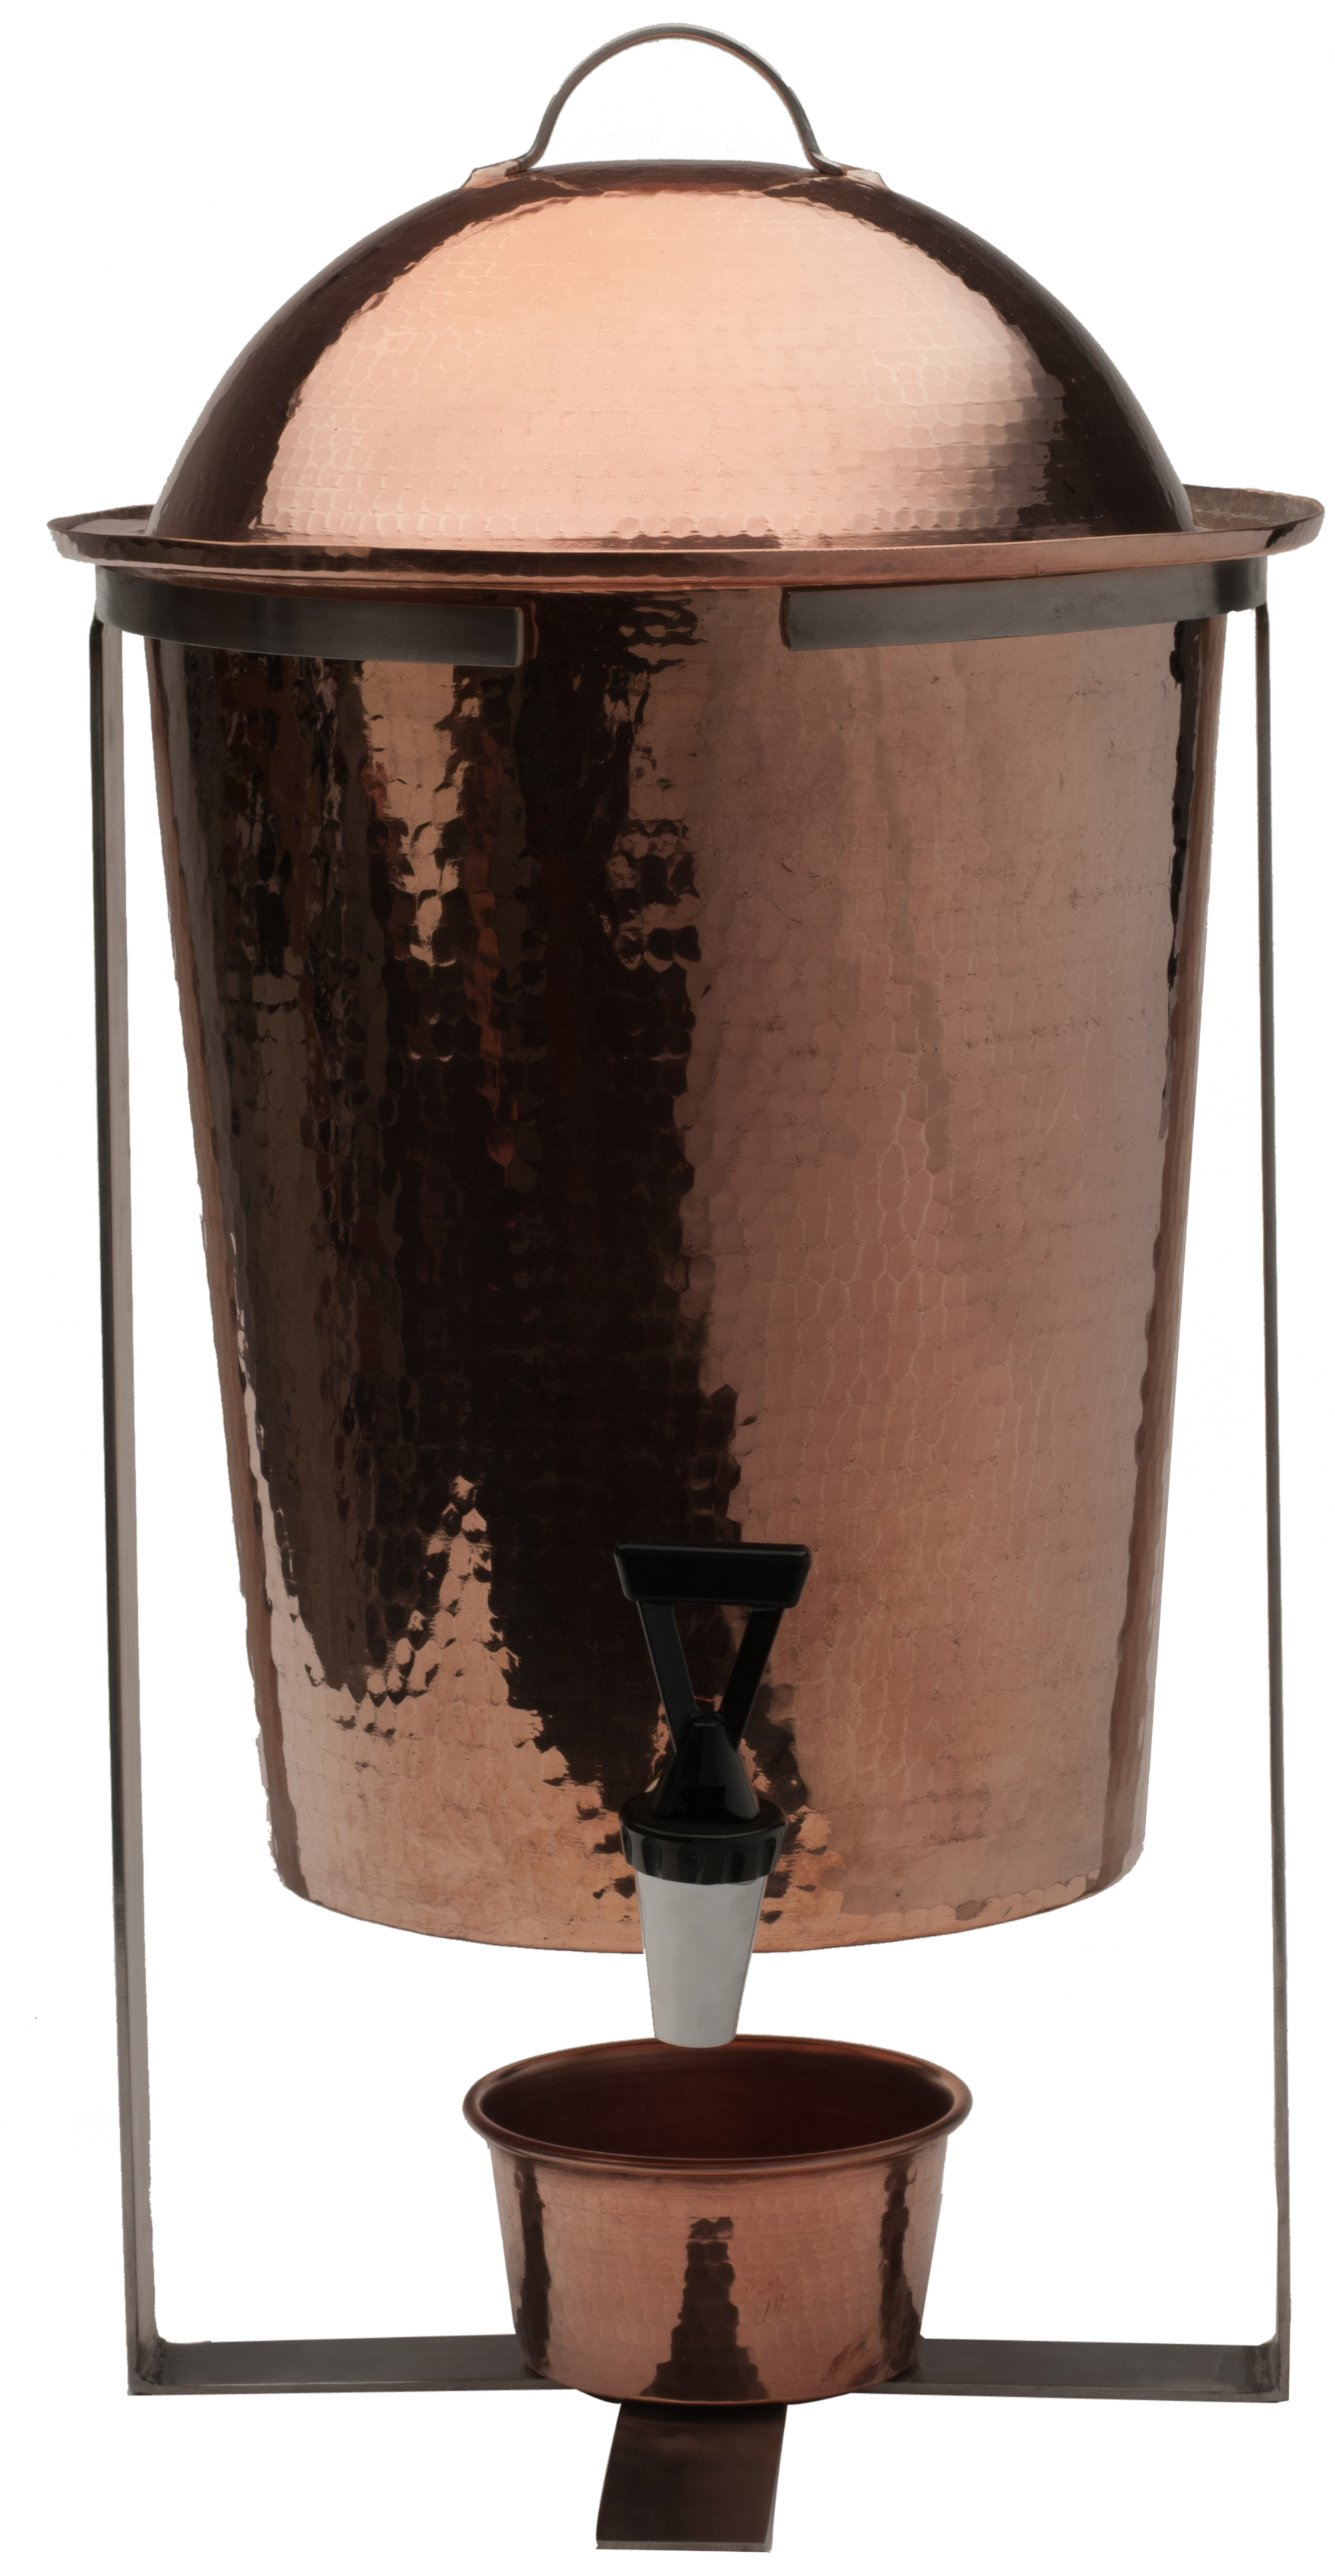 Sertodo Copper, Hand Hammered 100% Pure Copper, Arcadia Beverage Serving Urn with Spout, 13-quart Capacity